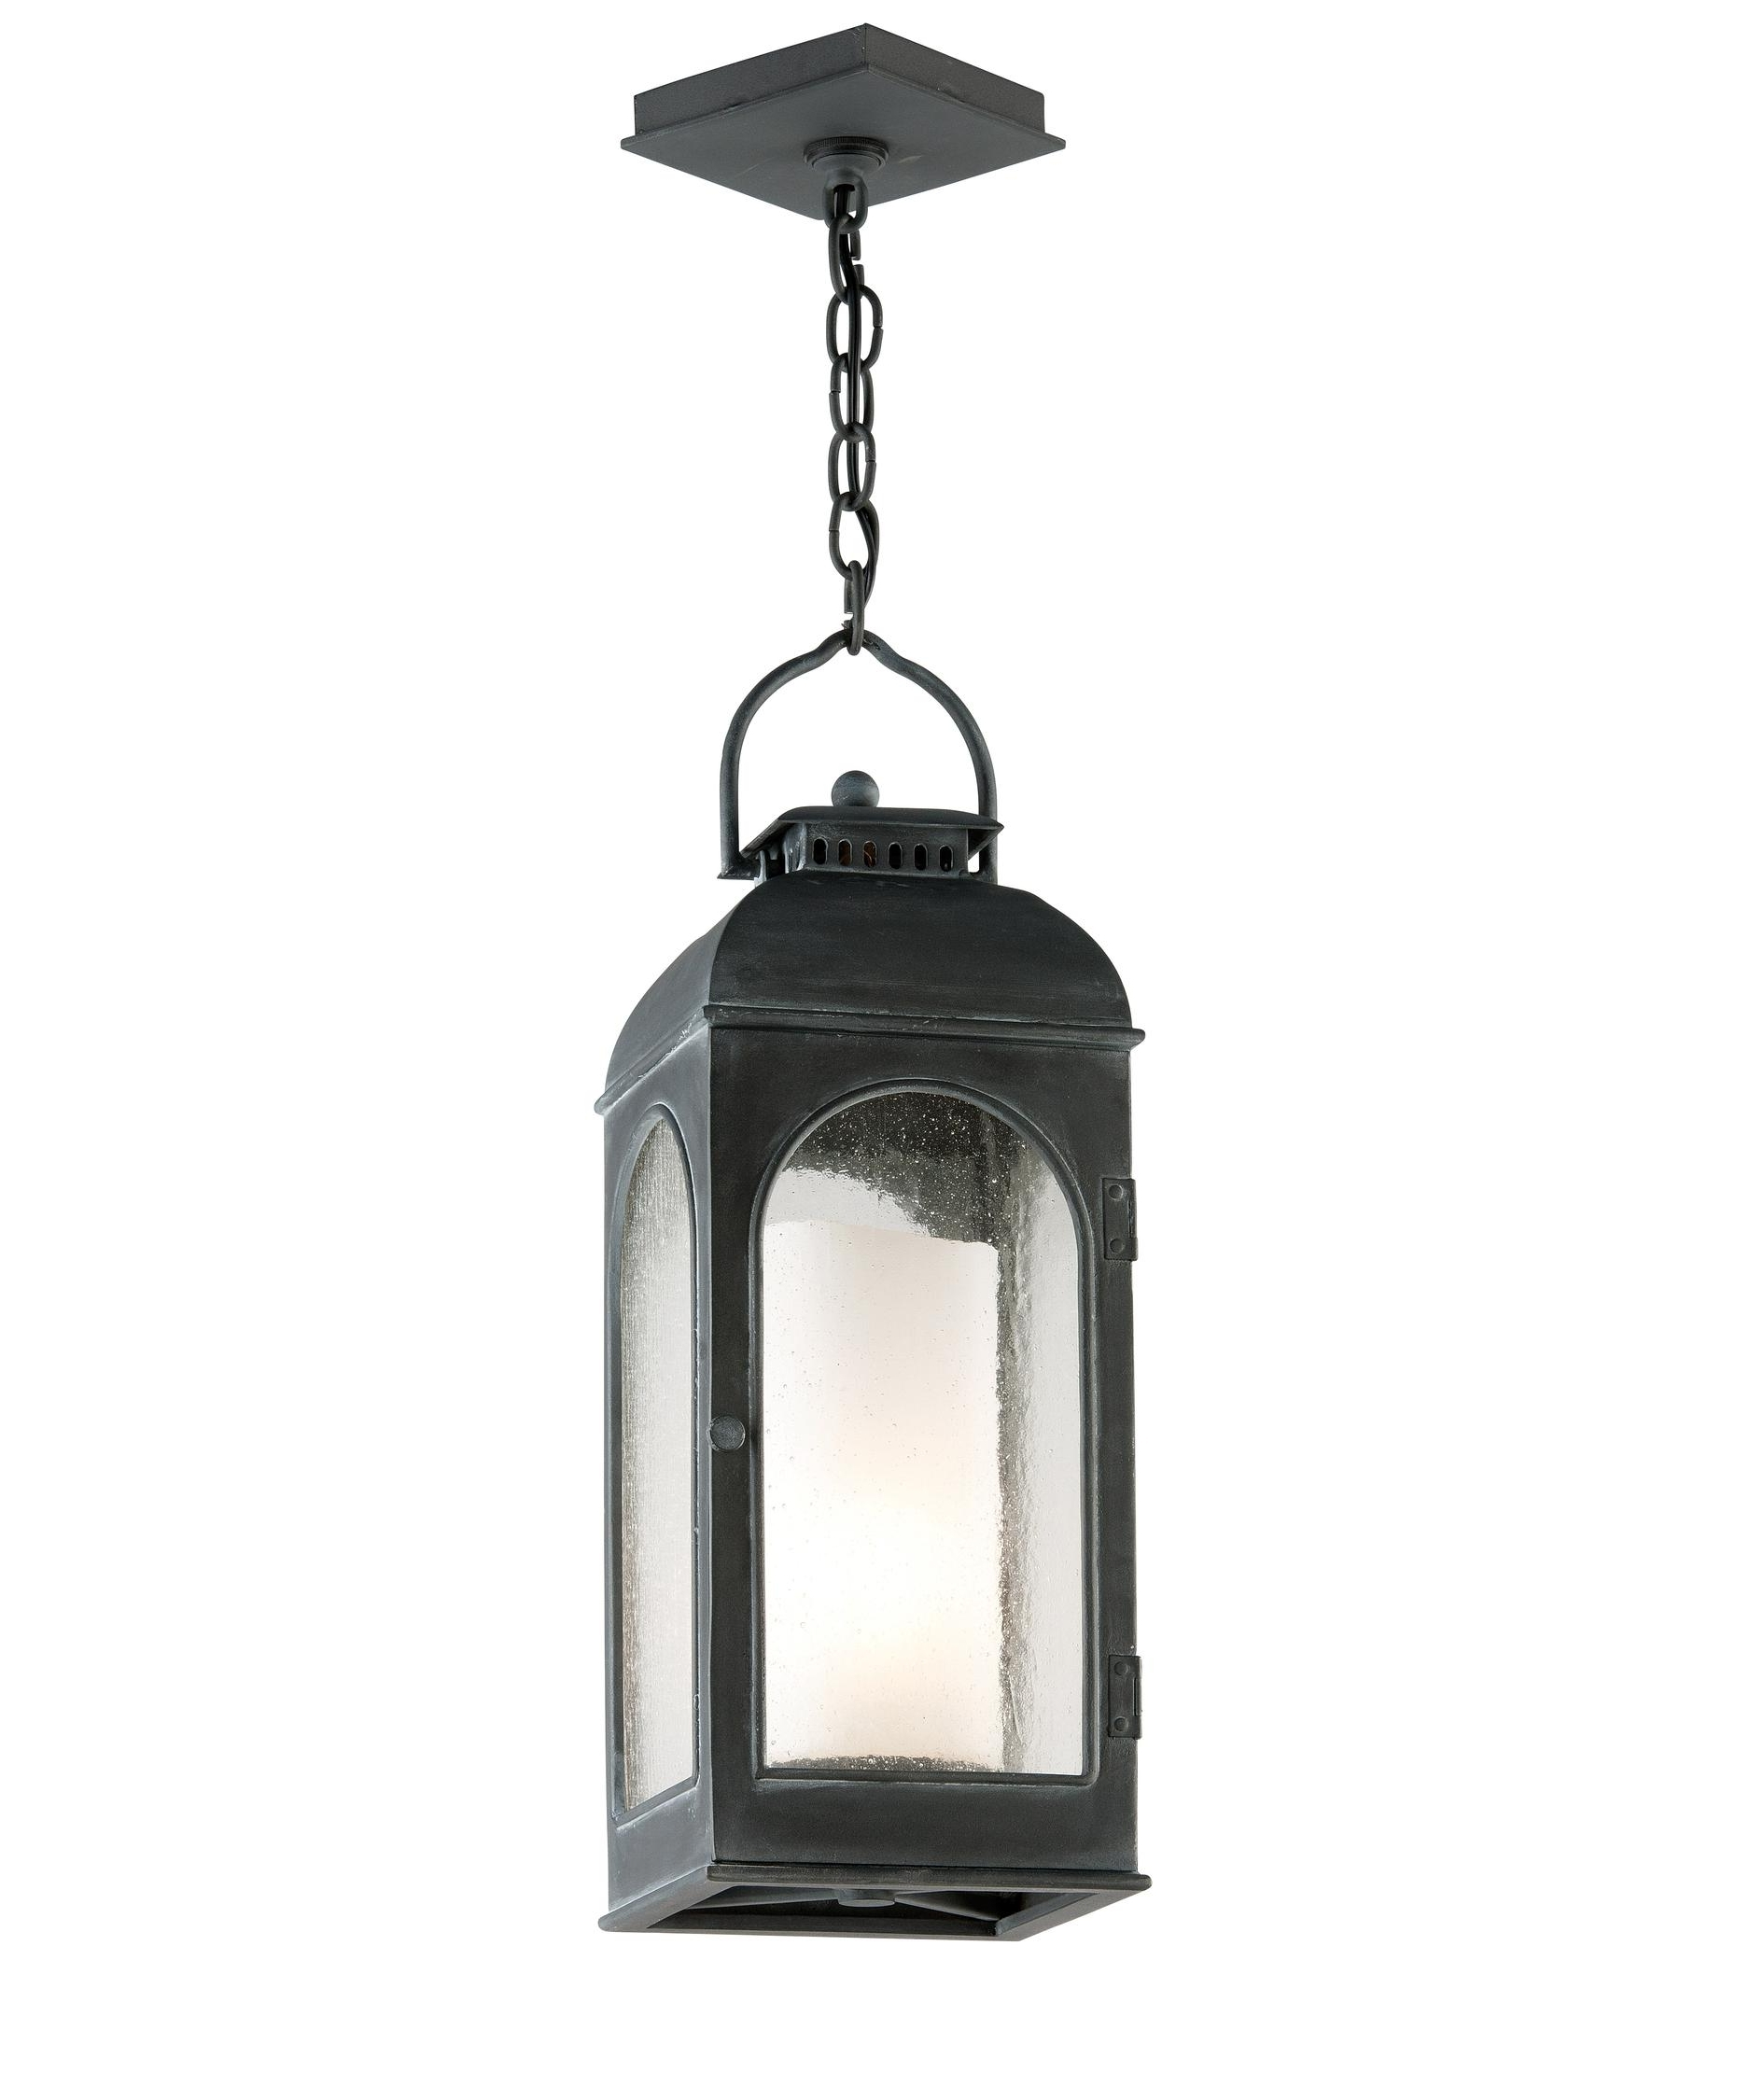 2019 Outdoor Hanging Candle Lanterns In Troy Lighting F3287 Derby 8 Inch Wide 1 Light Outdoor Hanging (View 17 of 20)